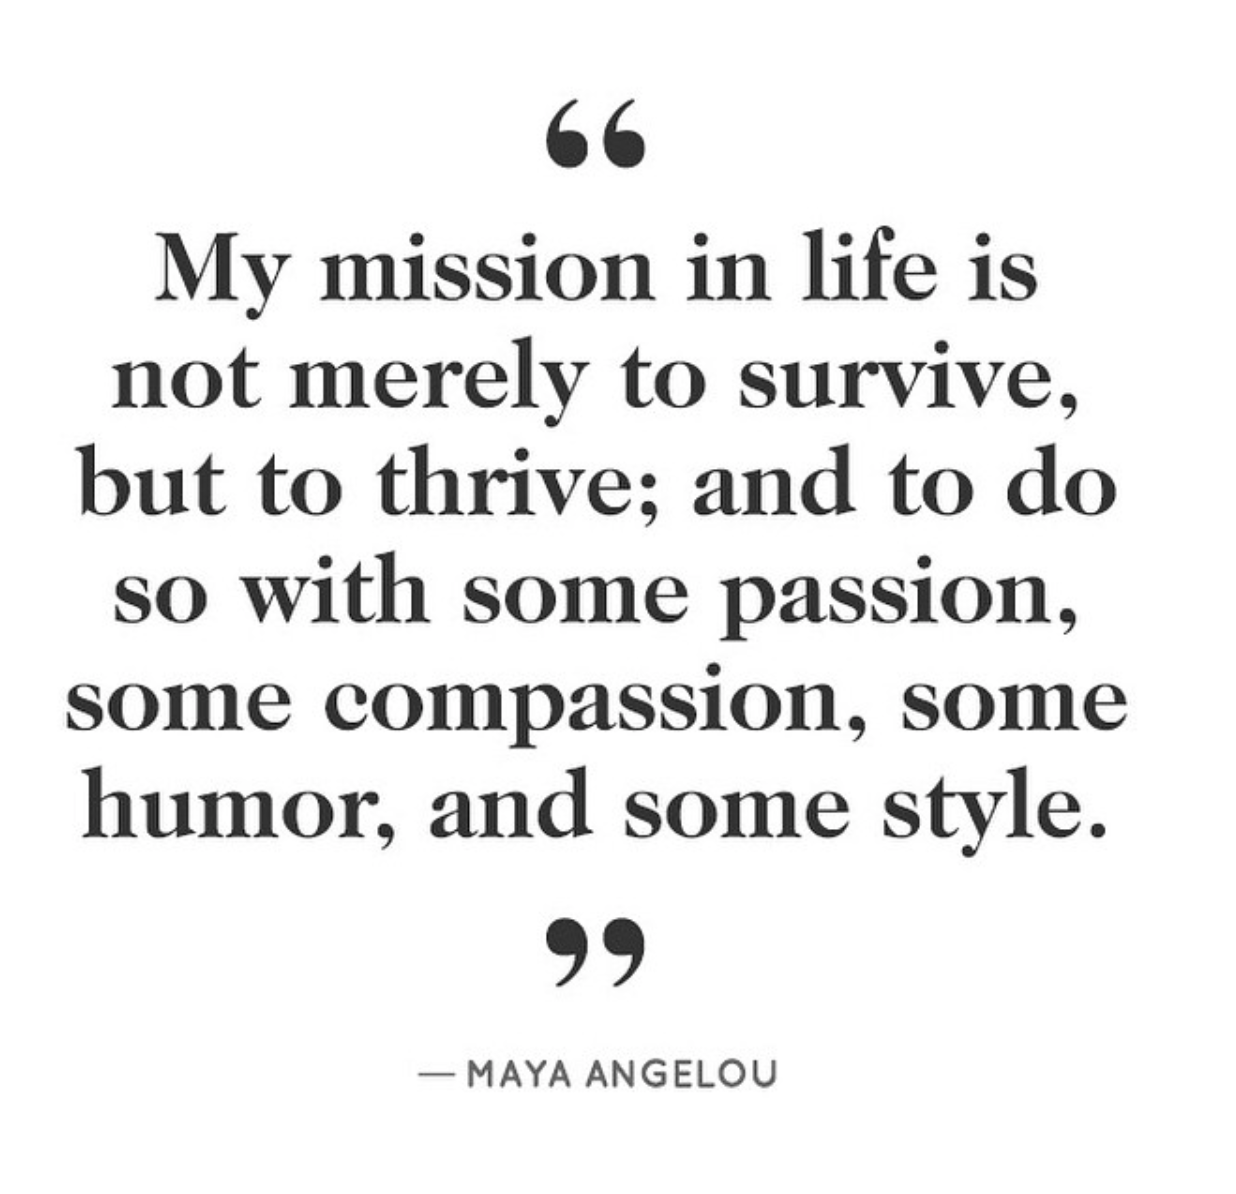 Inspirational Maya Angelou Quotes Life Lessons | Best life ...